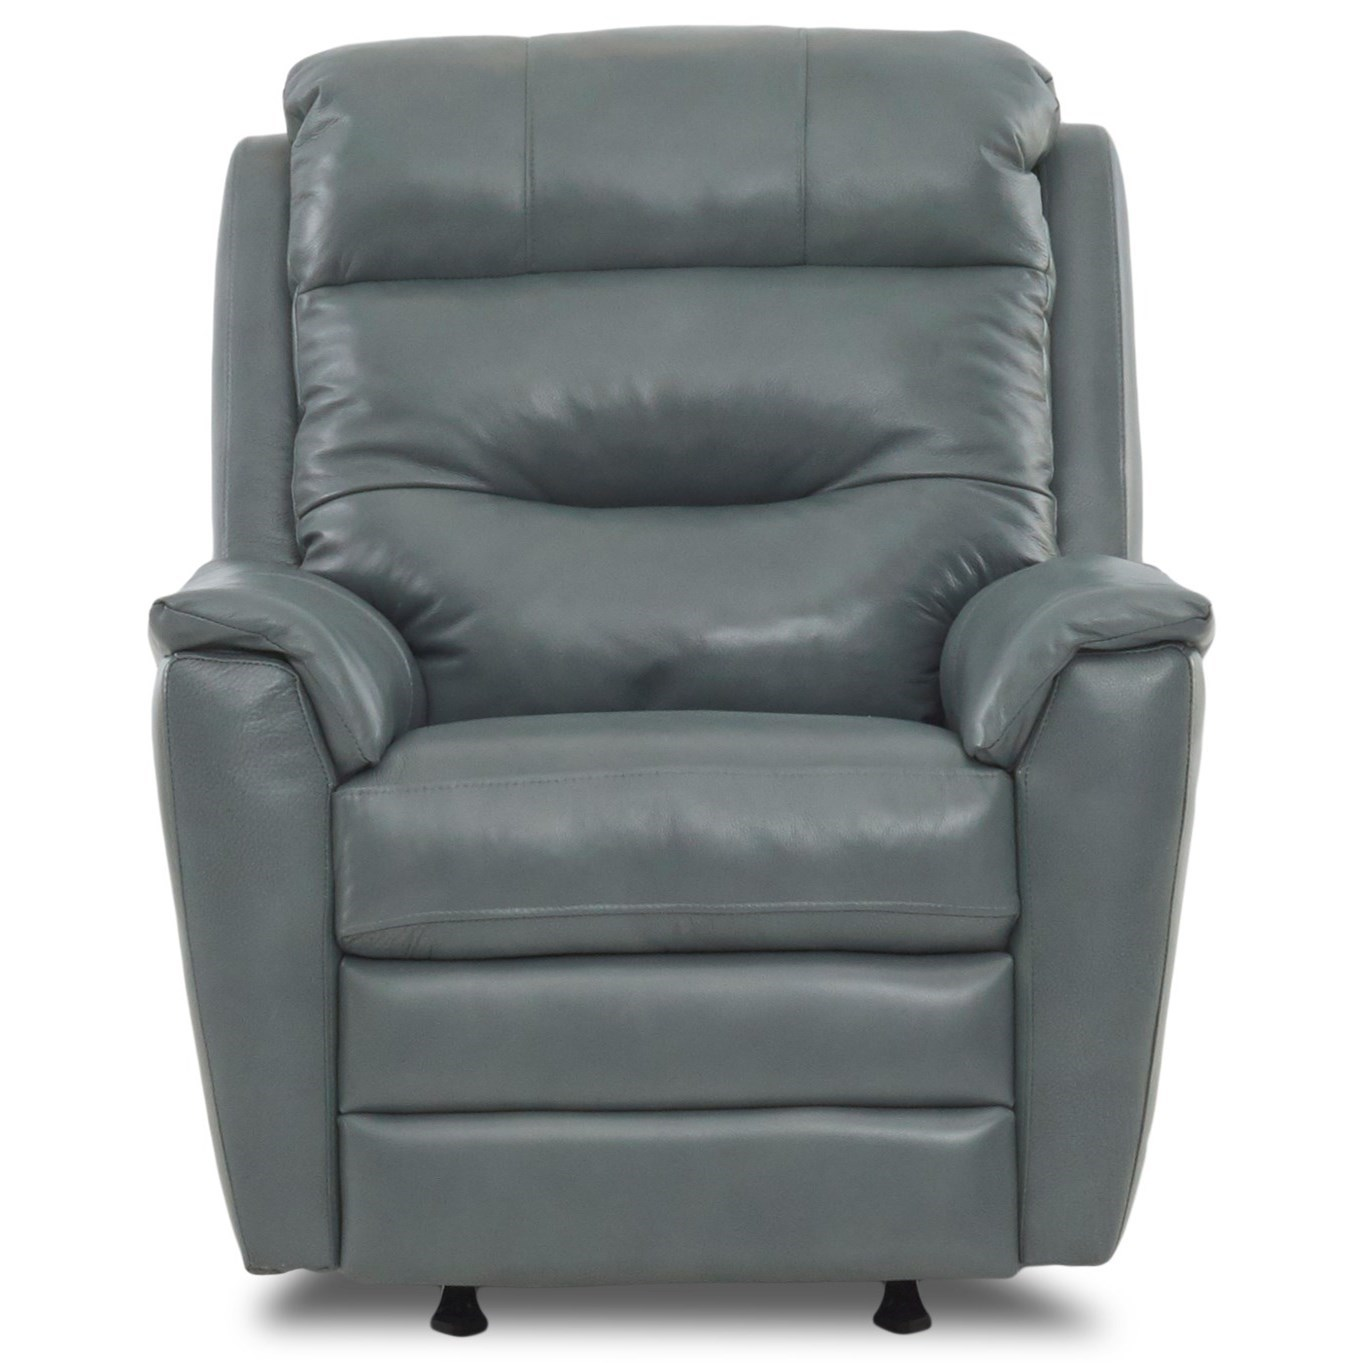 Nola Power Rocking Recliner with Power Headrest by Klaussner at Rooms for Less